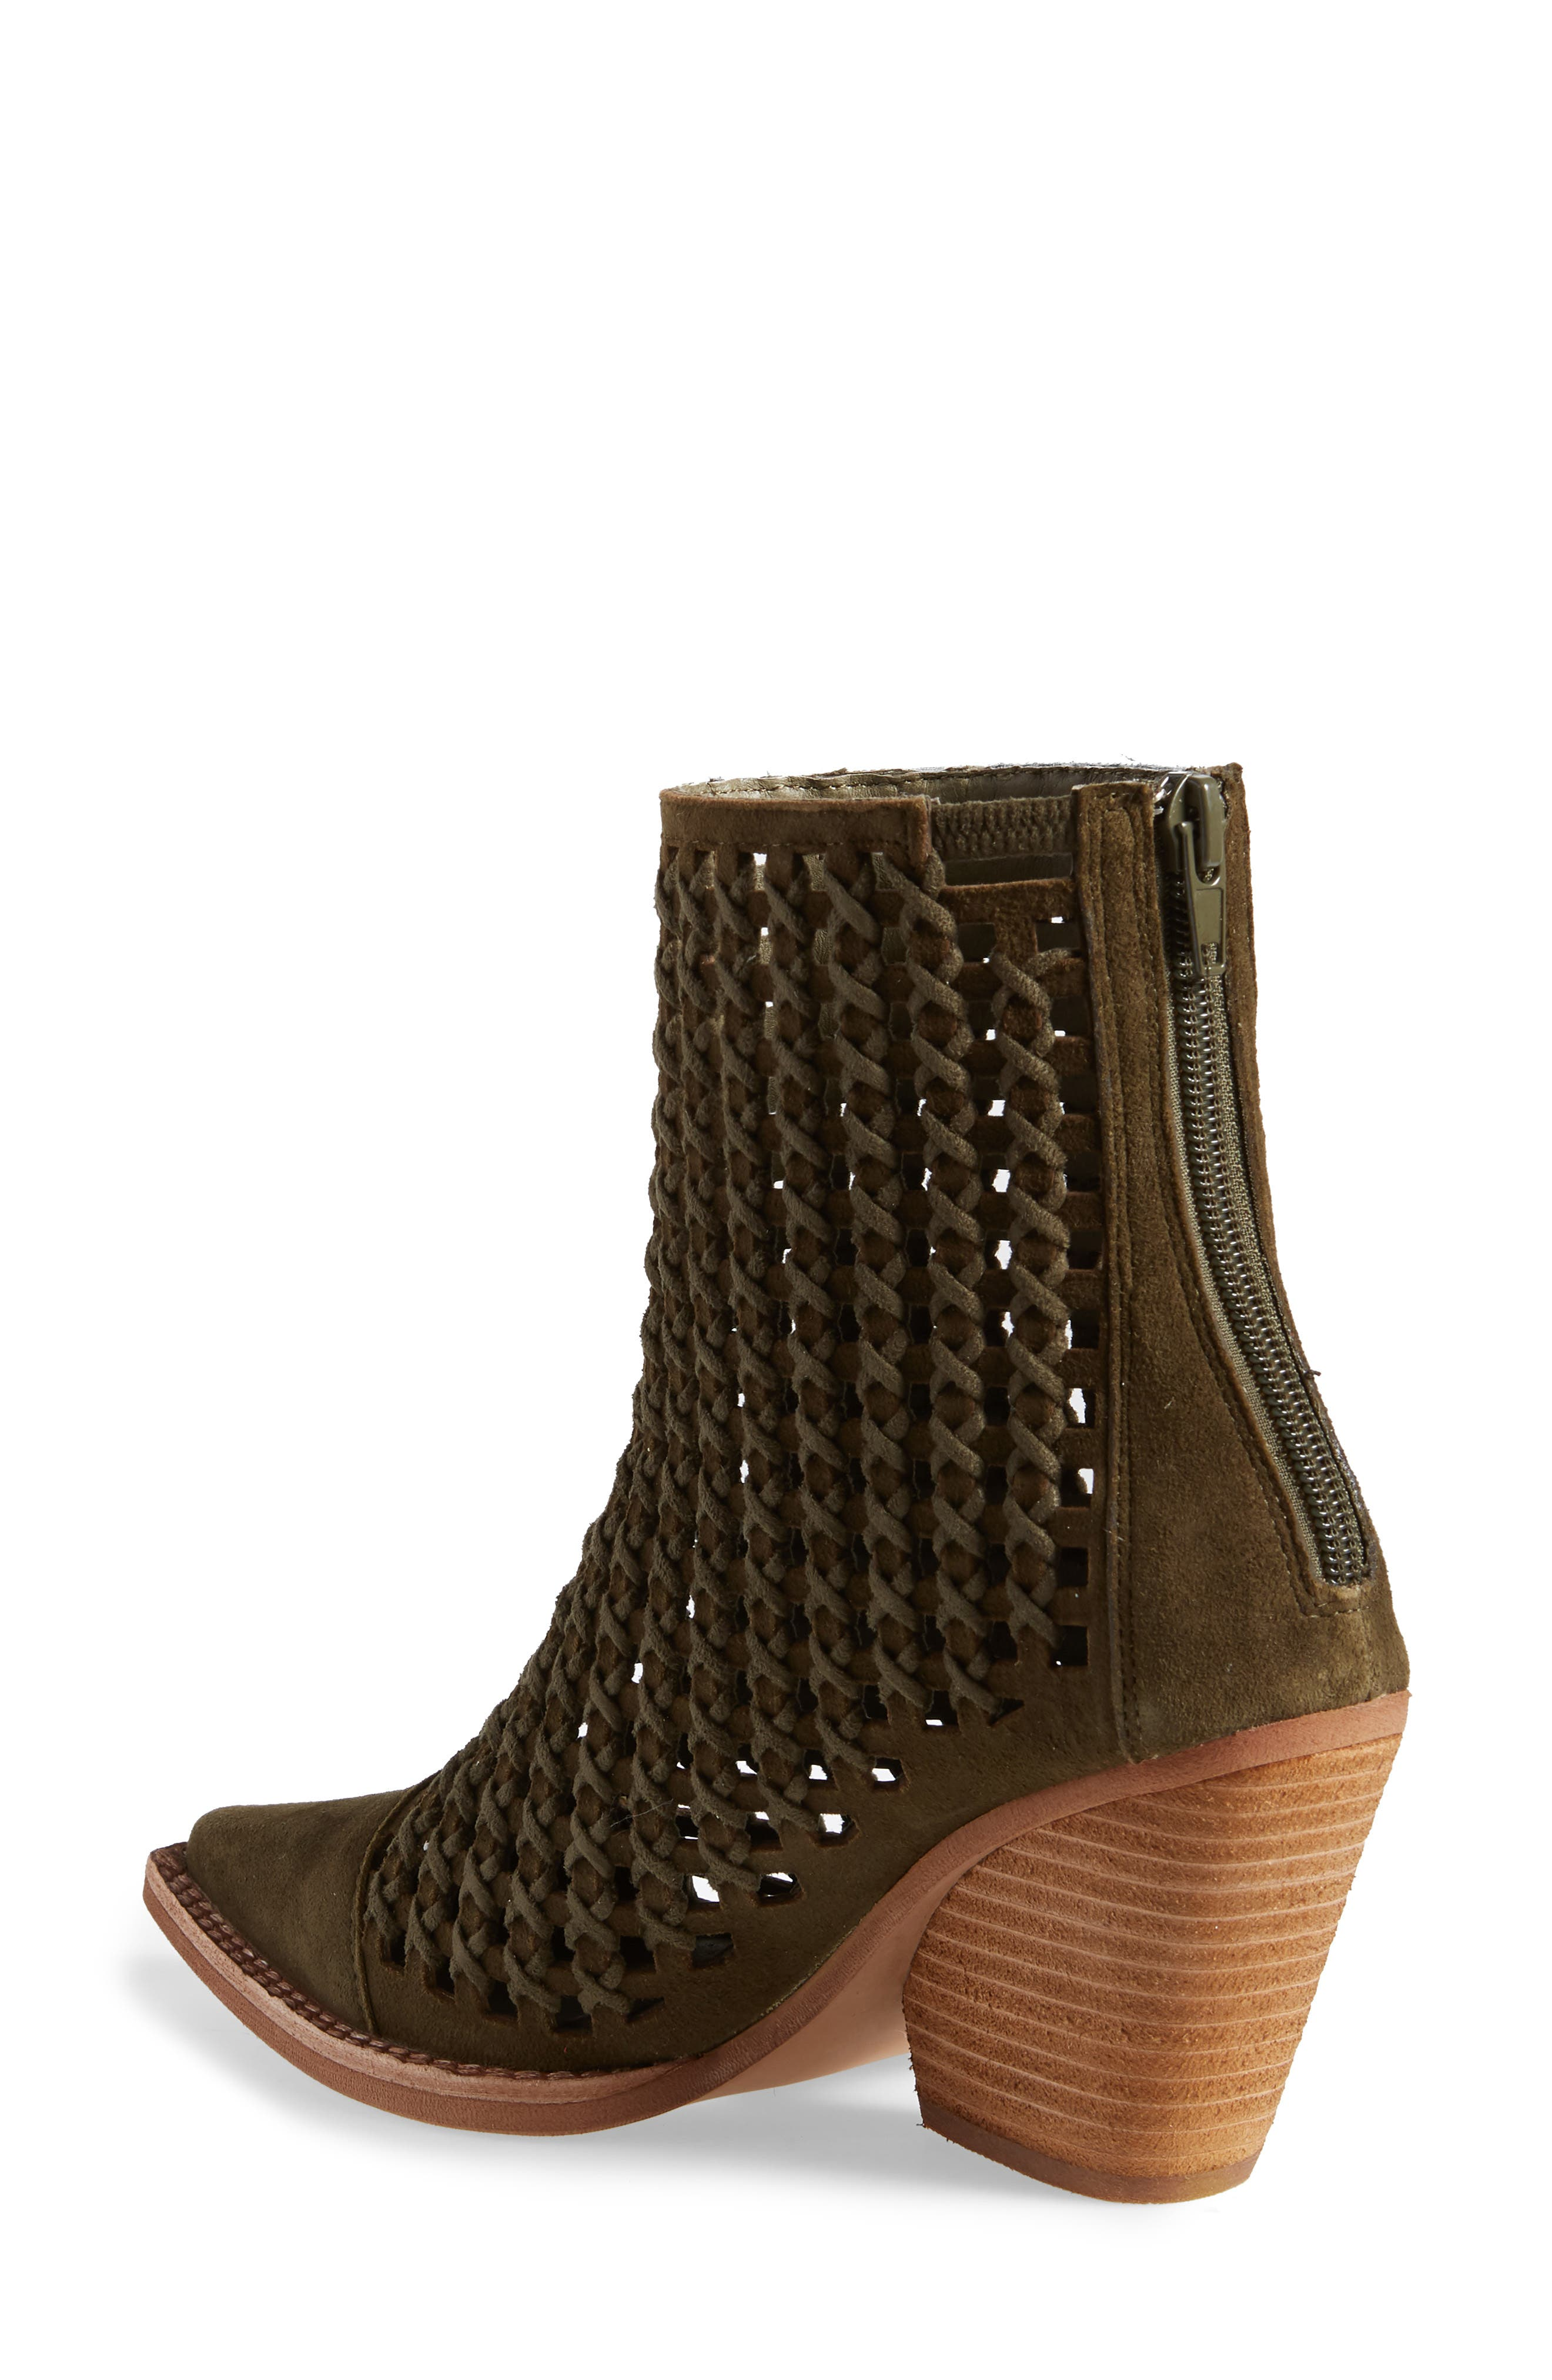 Oakwood Perforated Bootie,                             Alternate thumbnail 2, color,                             KHAKI SUEDE